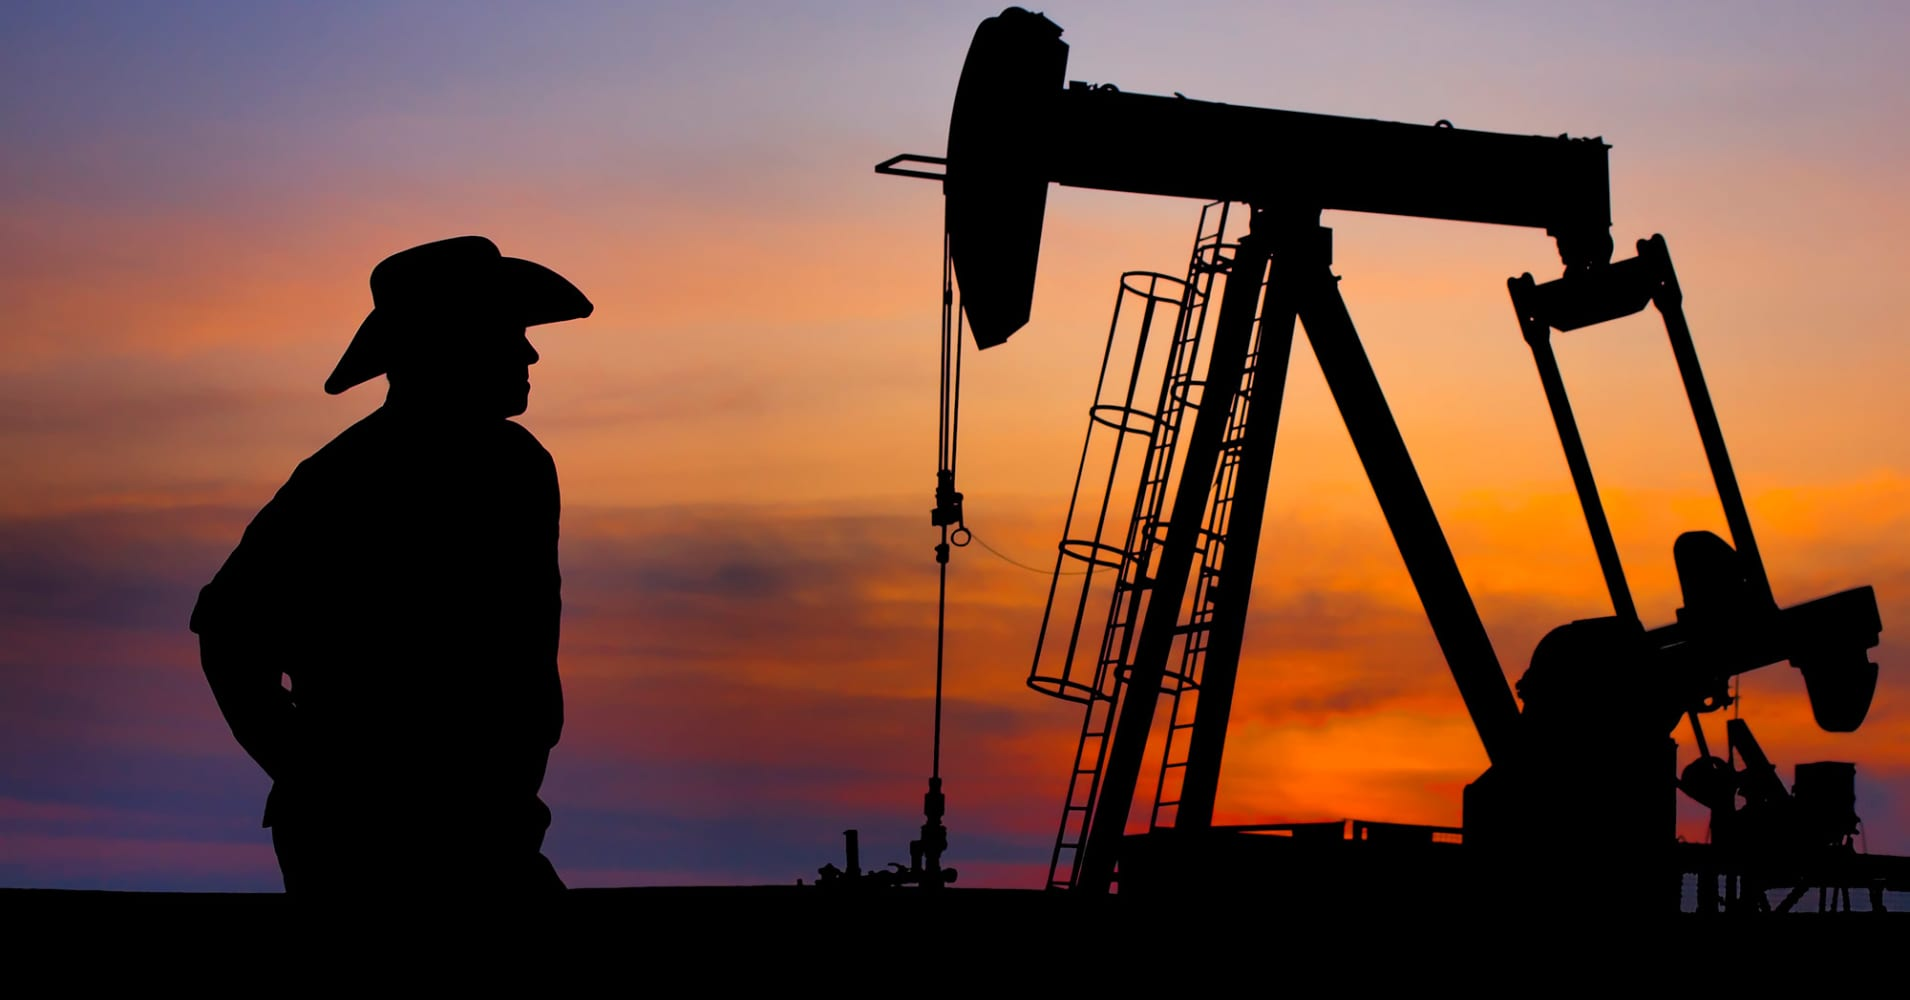 Oil and gas business activity plunges, outlook turns negative: Dallas Fed survey